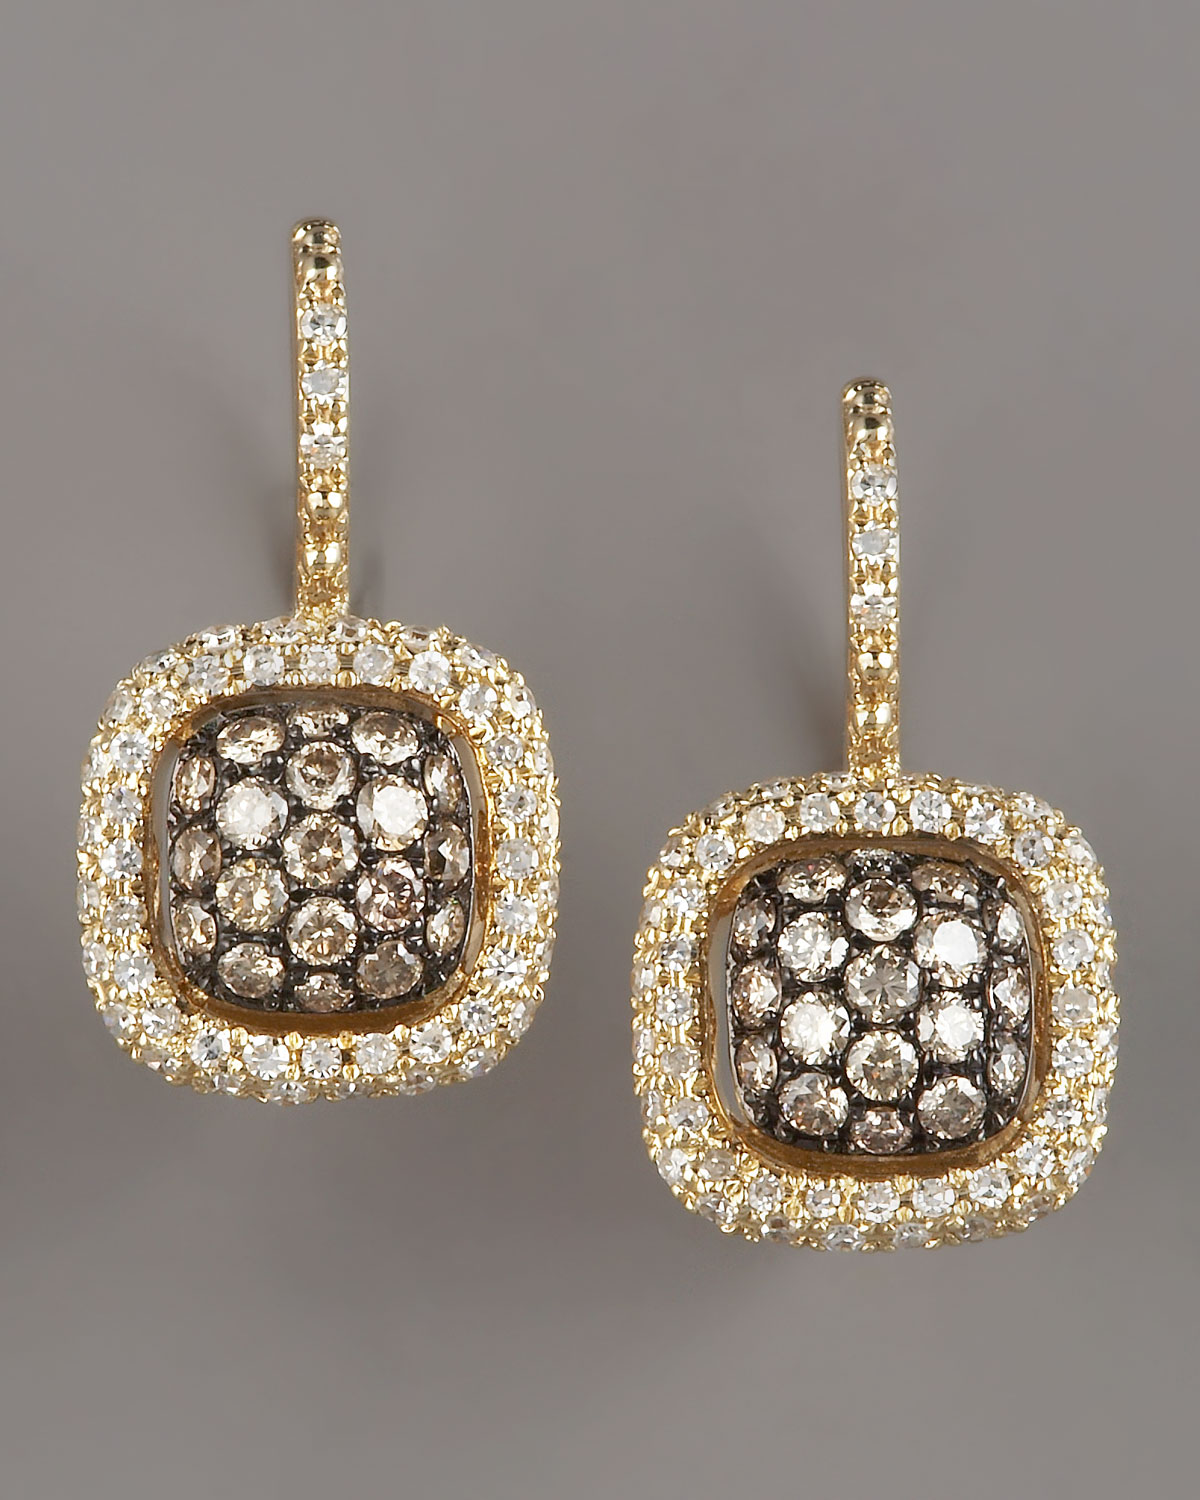 Kc Designs Champagne Amp White Diamond Earrings Yellow In